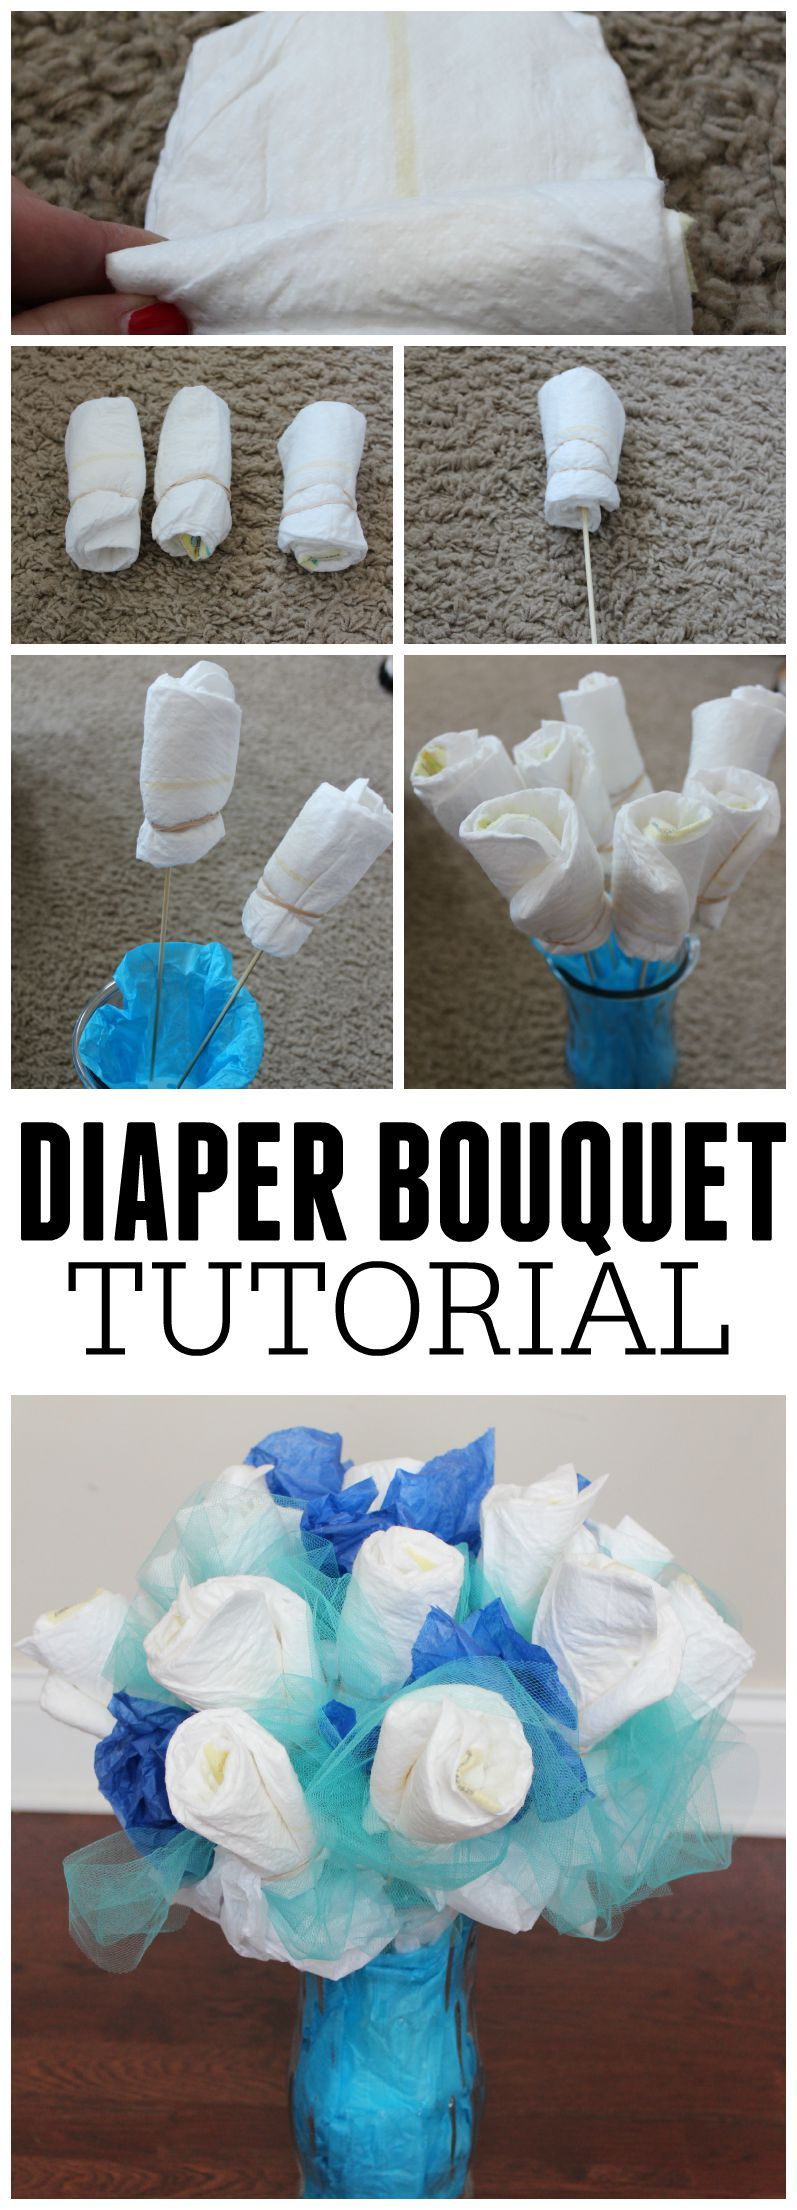 How to make a diaper bouquet picture tutorial diaper for Baby diaper decoration ideas